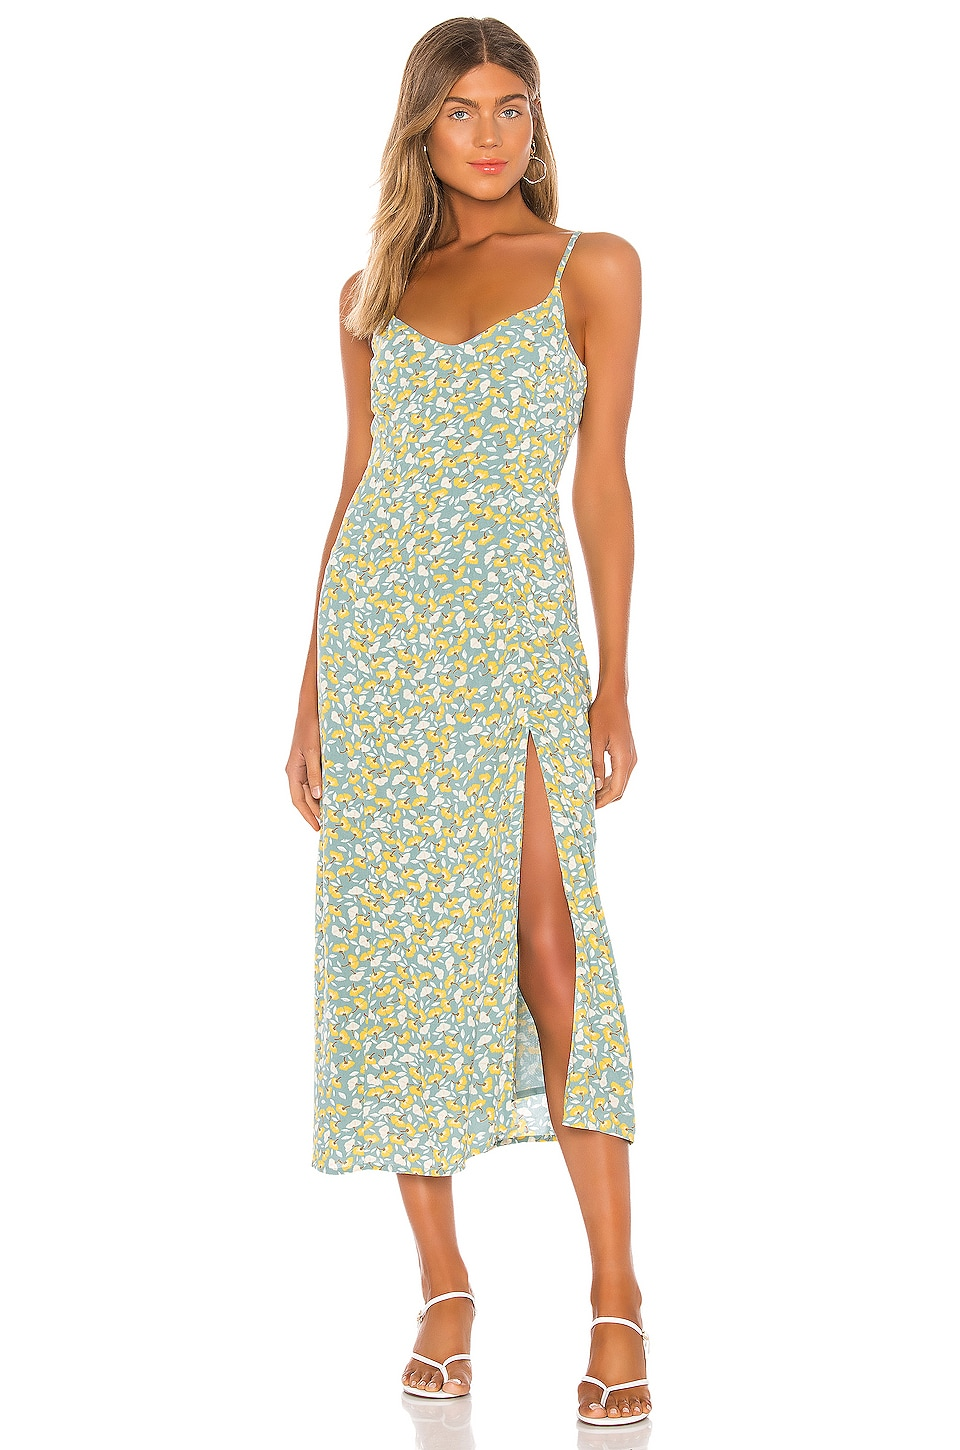 Mai Slip Woven Dress             AMUSE SOCIETY                                                                                                       CA$ 79.78 9